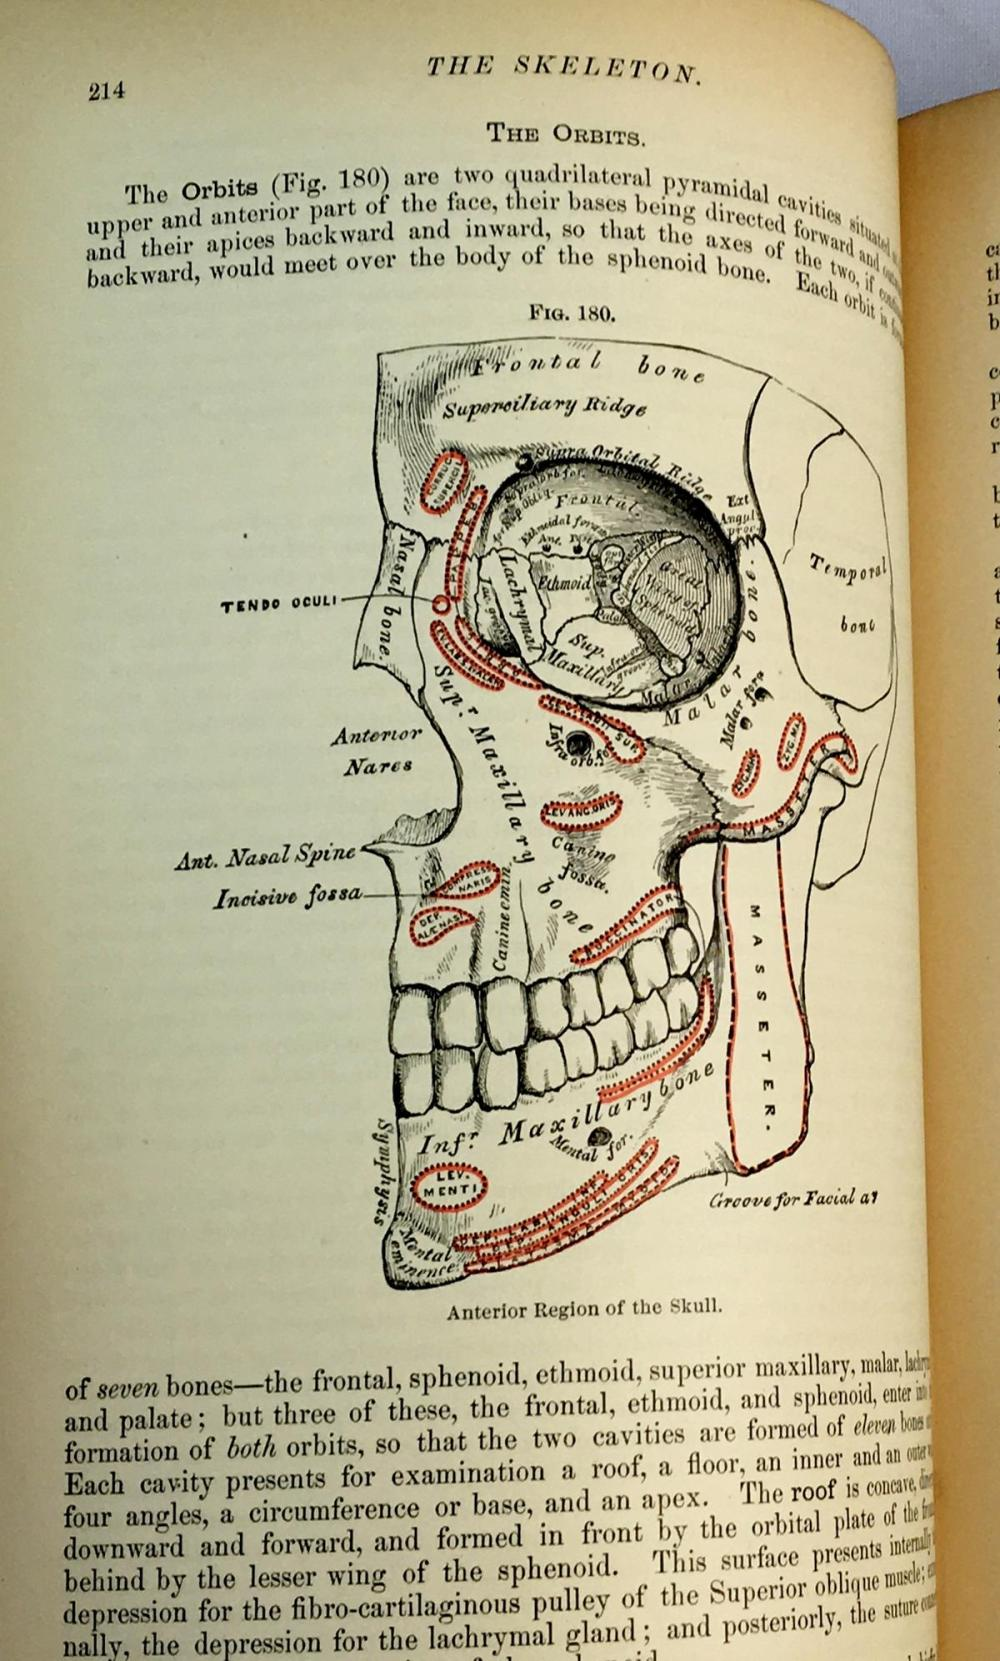 1887 Anatomy, Descriptive & Surgical by Henry Gray, F.R.S. Illustrated